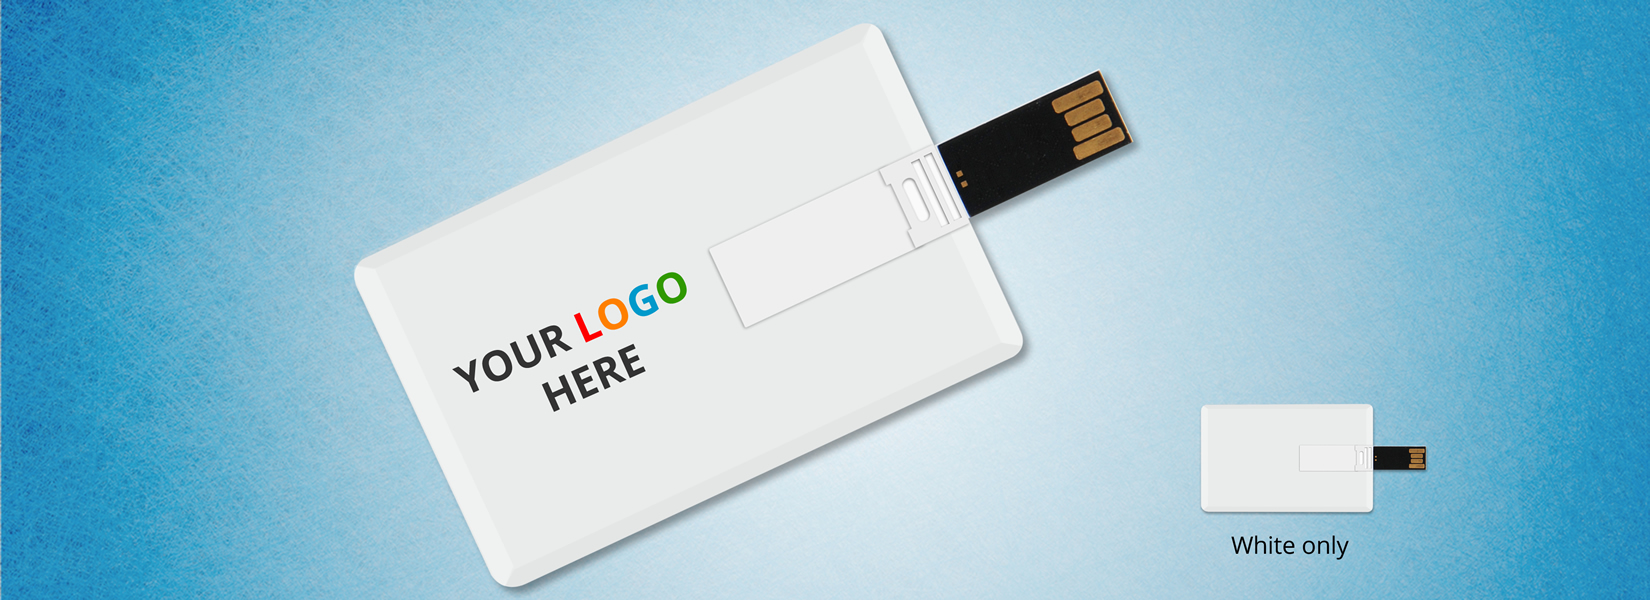 Usb business cards unlimitedgamers business card flash drives credit card flash drive custom usb reheart Image collections